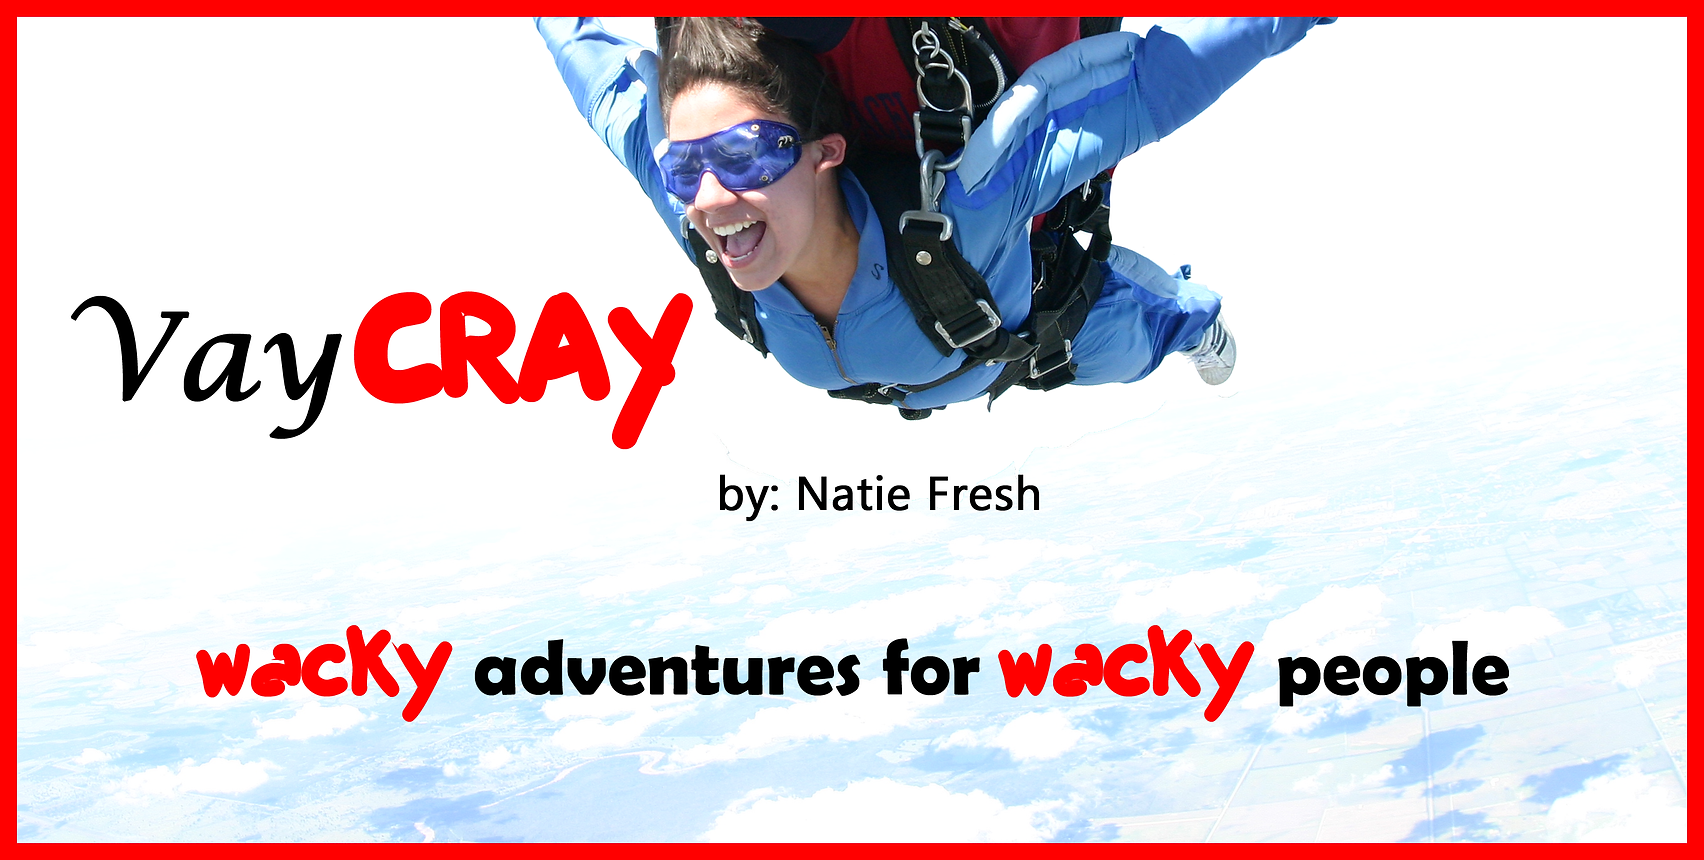 VayCray, a travel blog by Natie Fresh